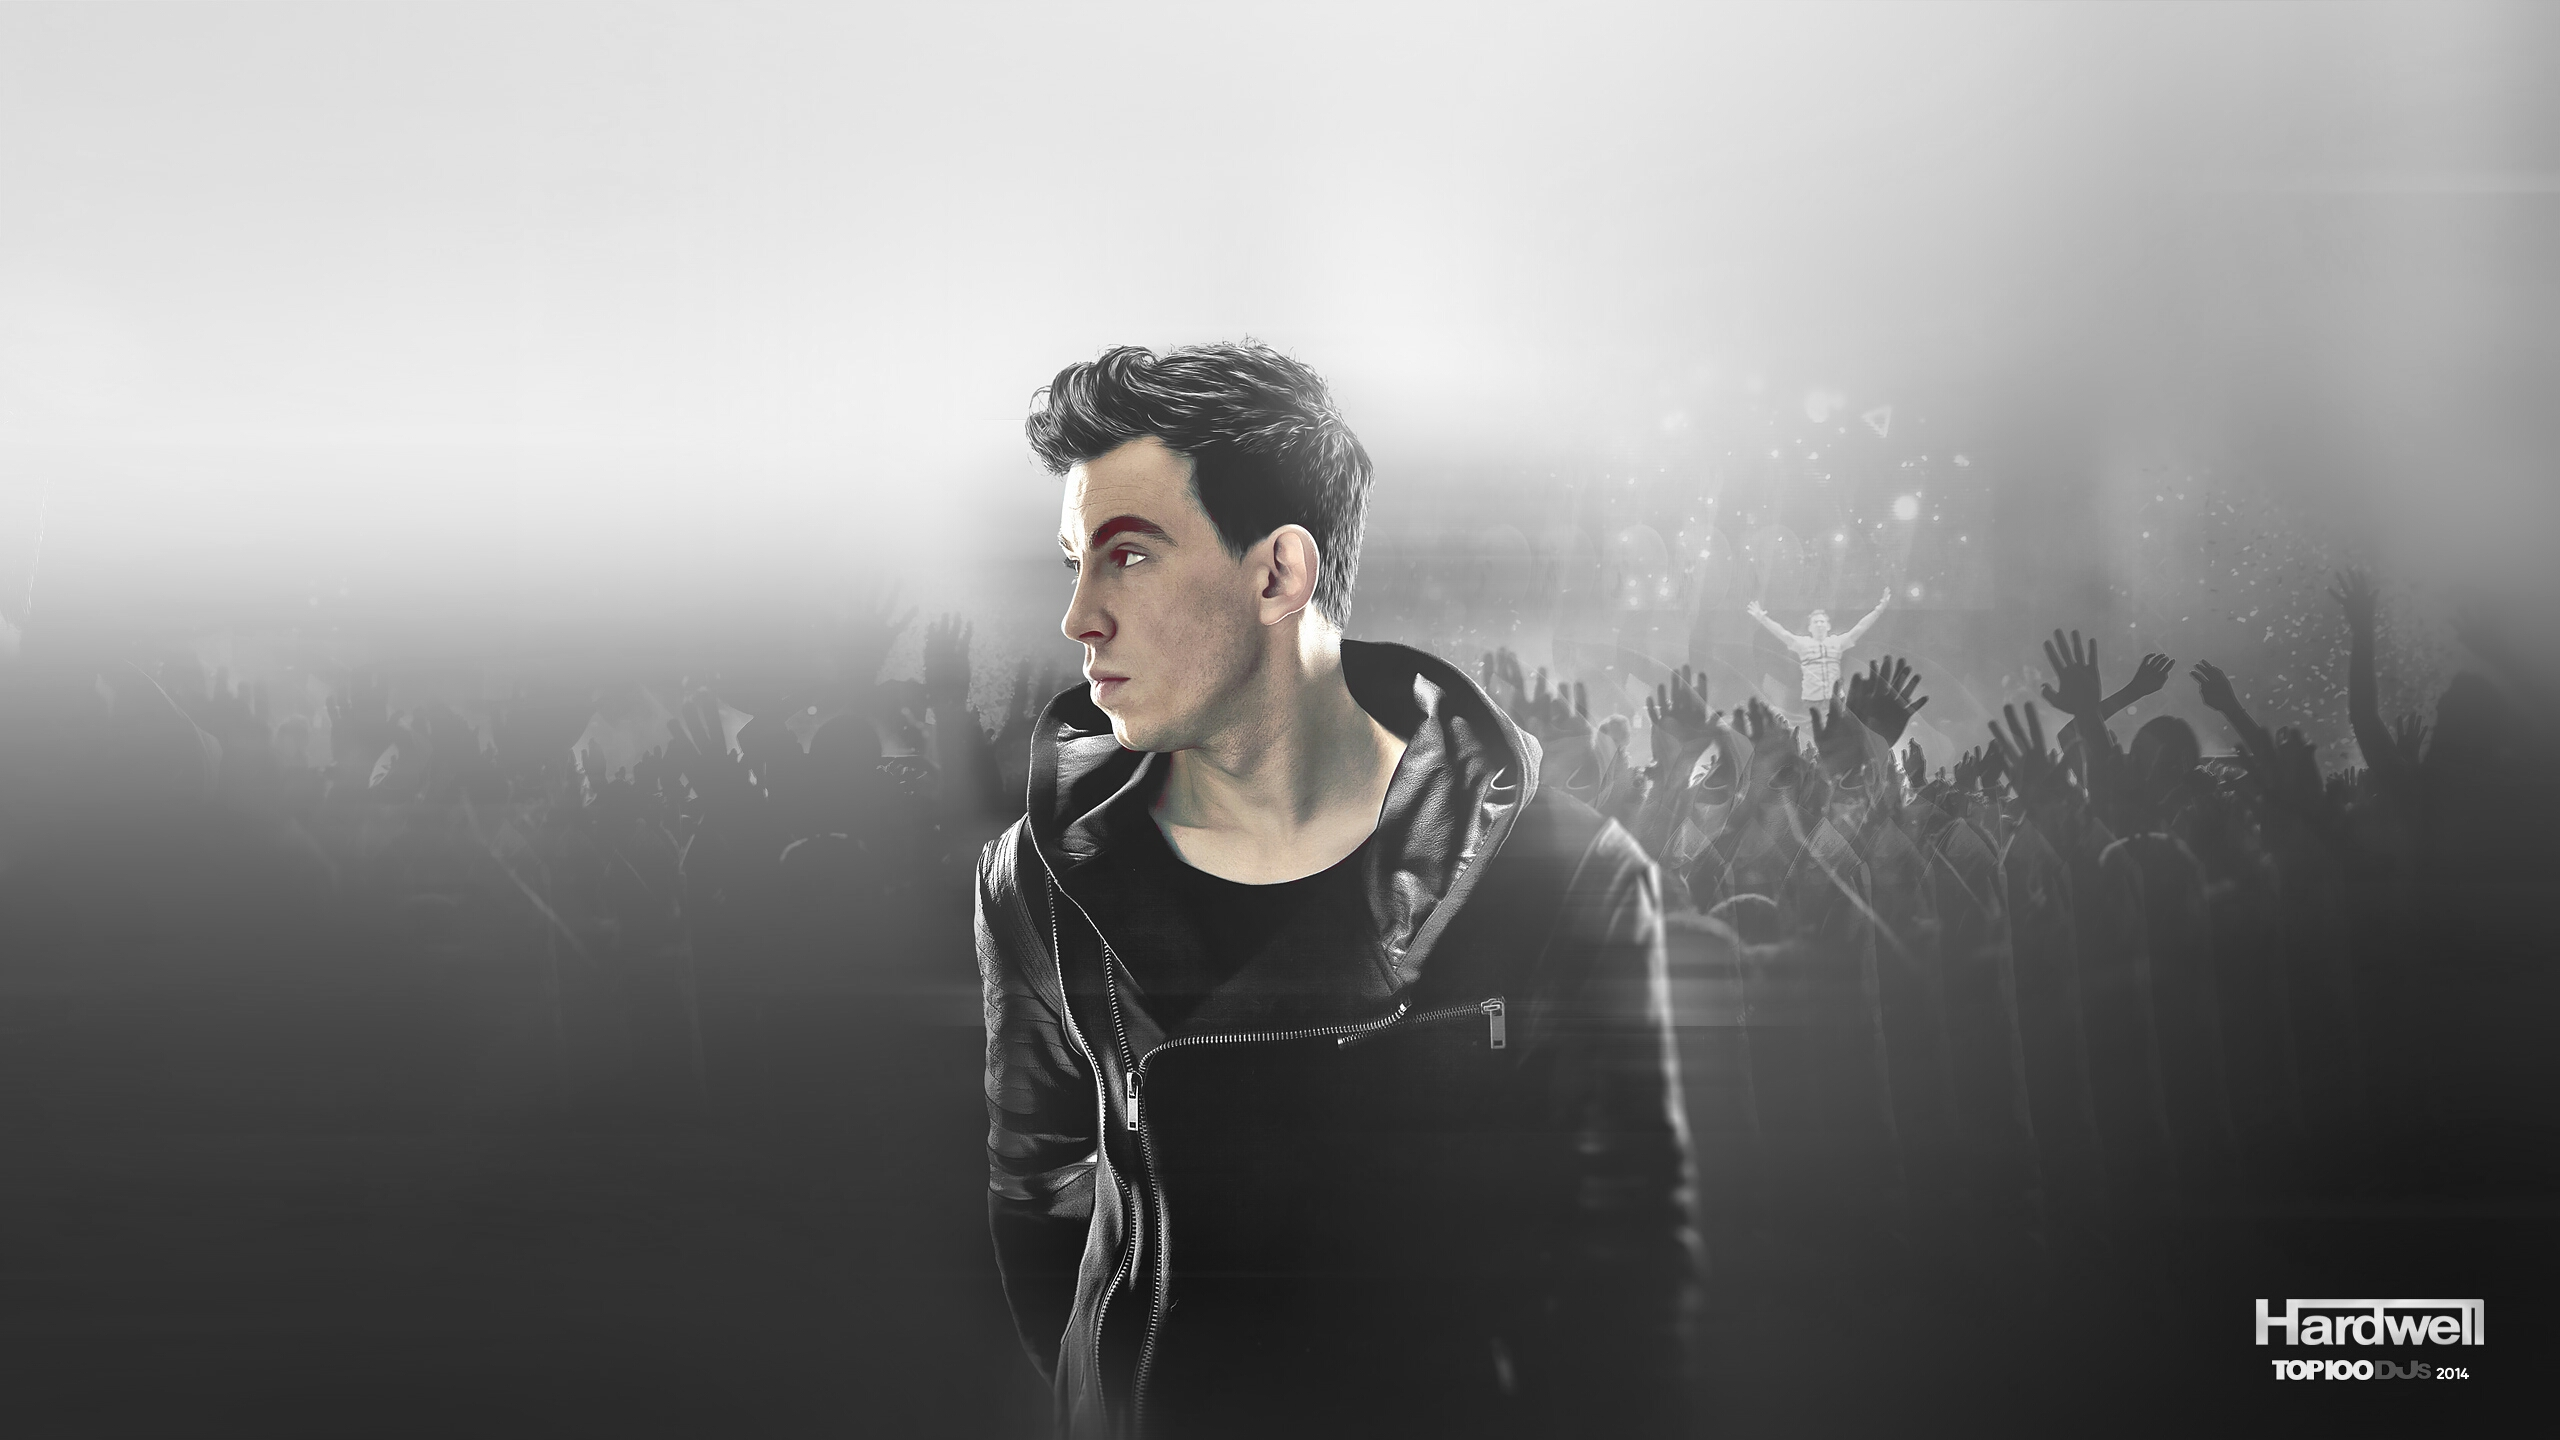 dj hardwell music download